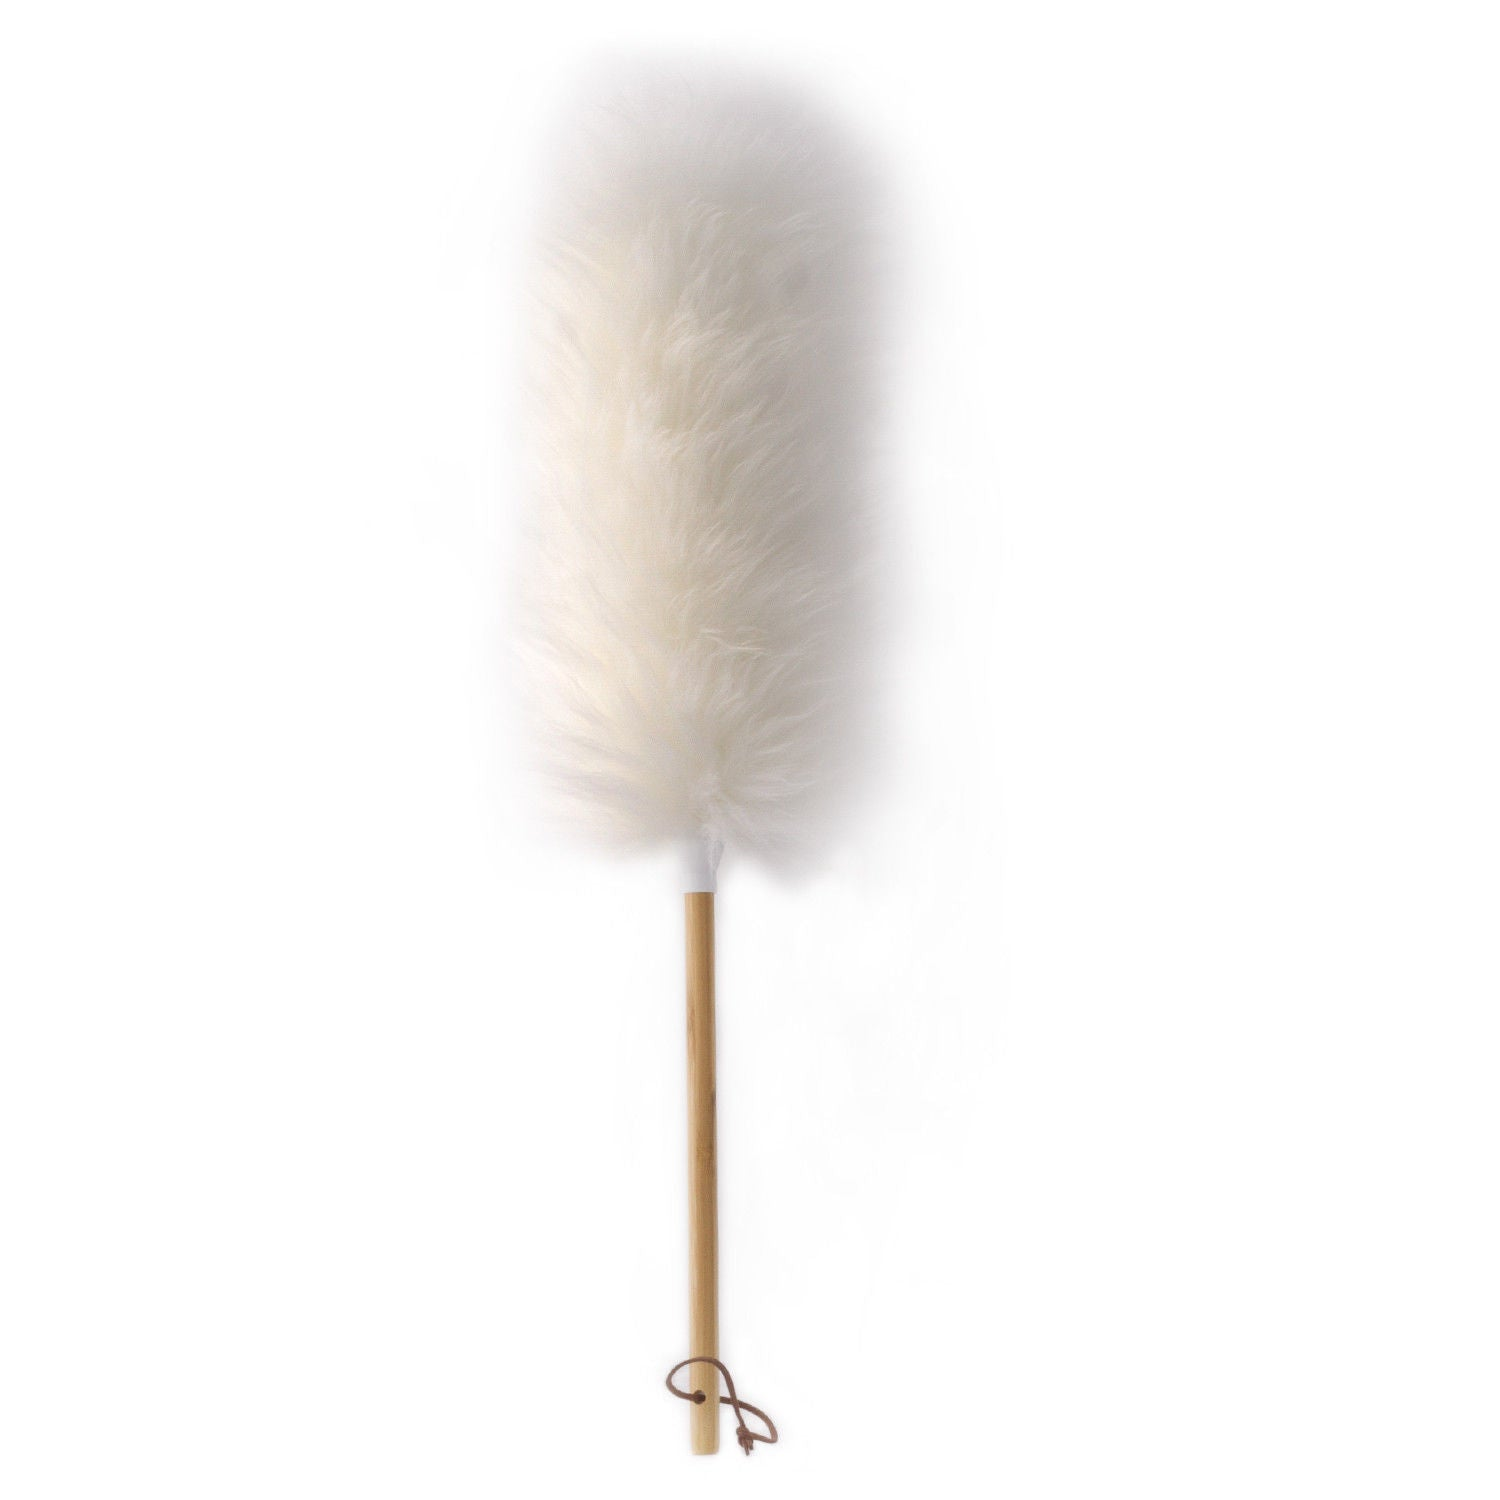 "Long Duster With Wooden Handle - Cobweb 23"" Daster W/ Wood Handle"